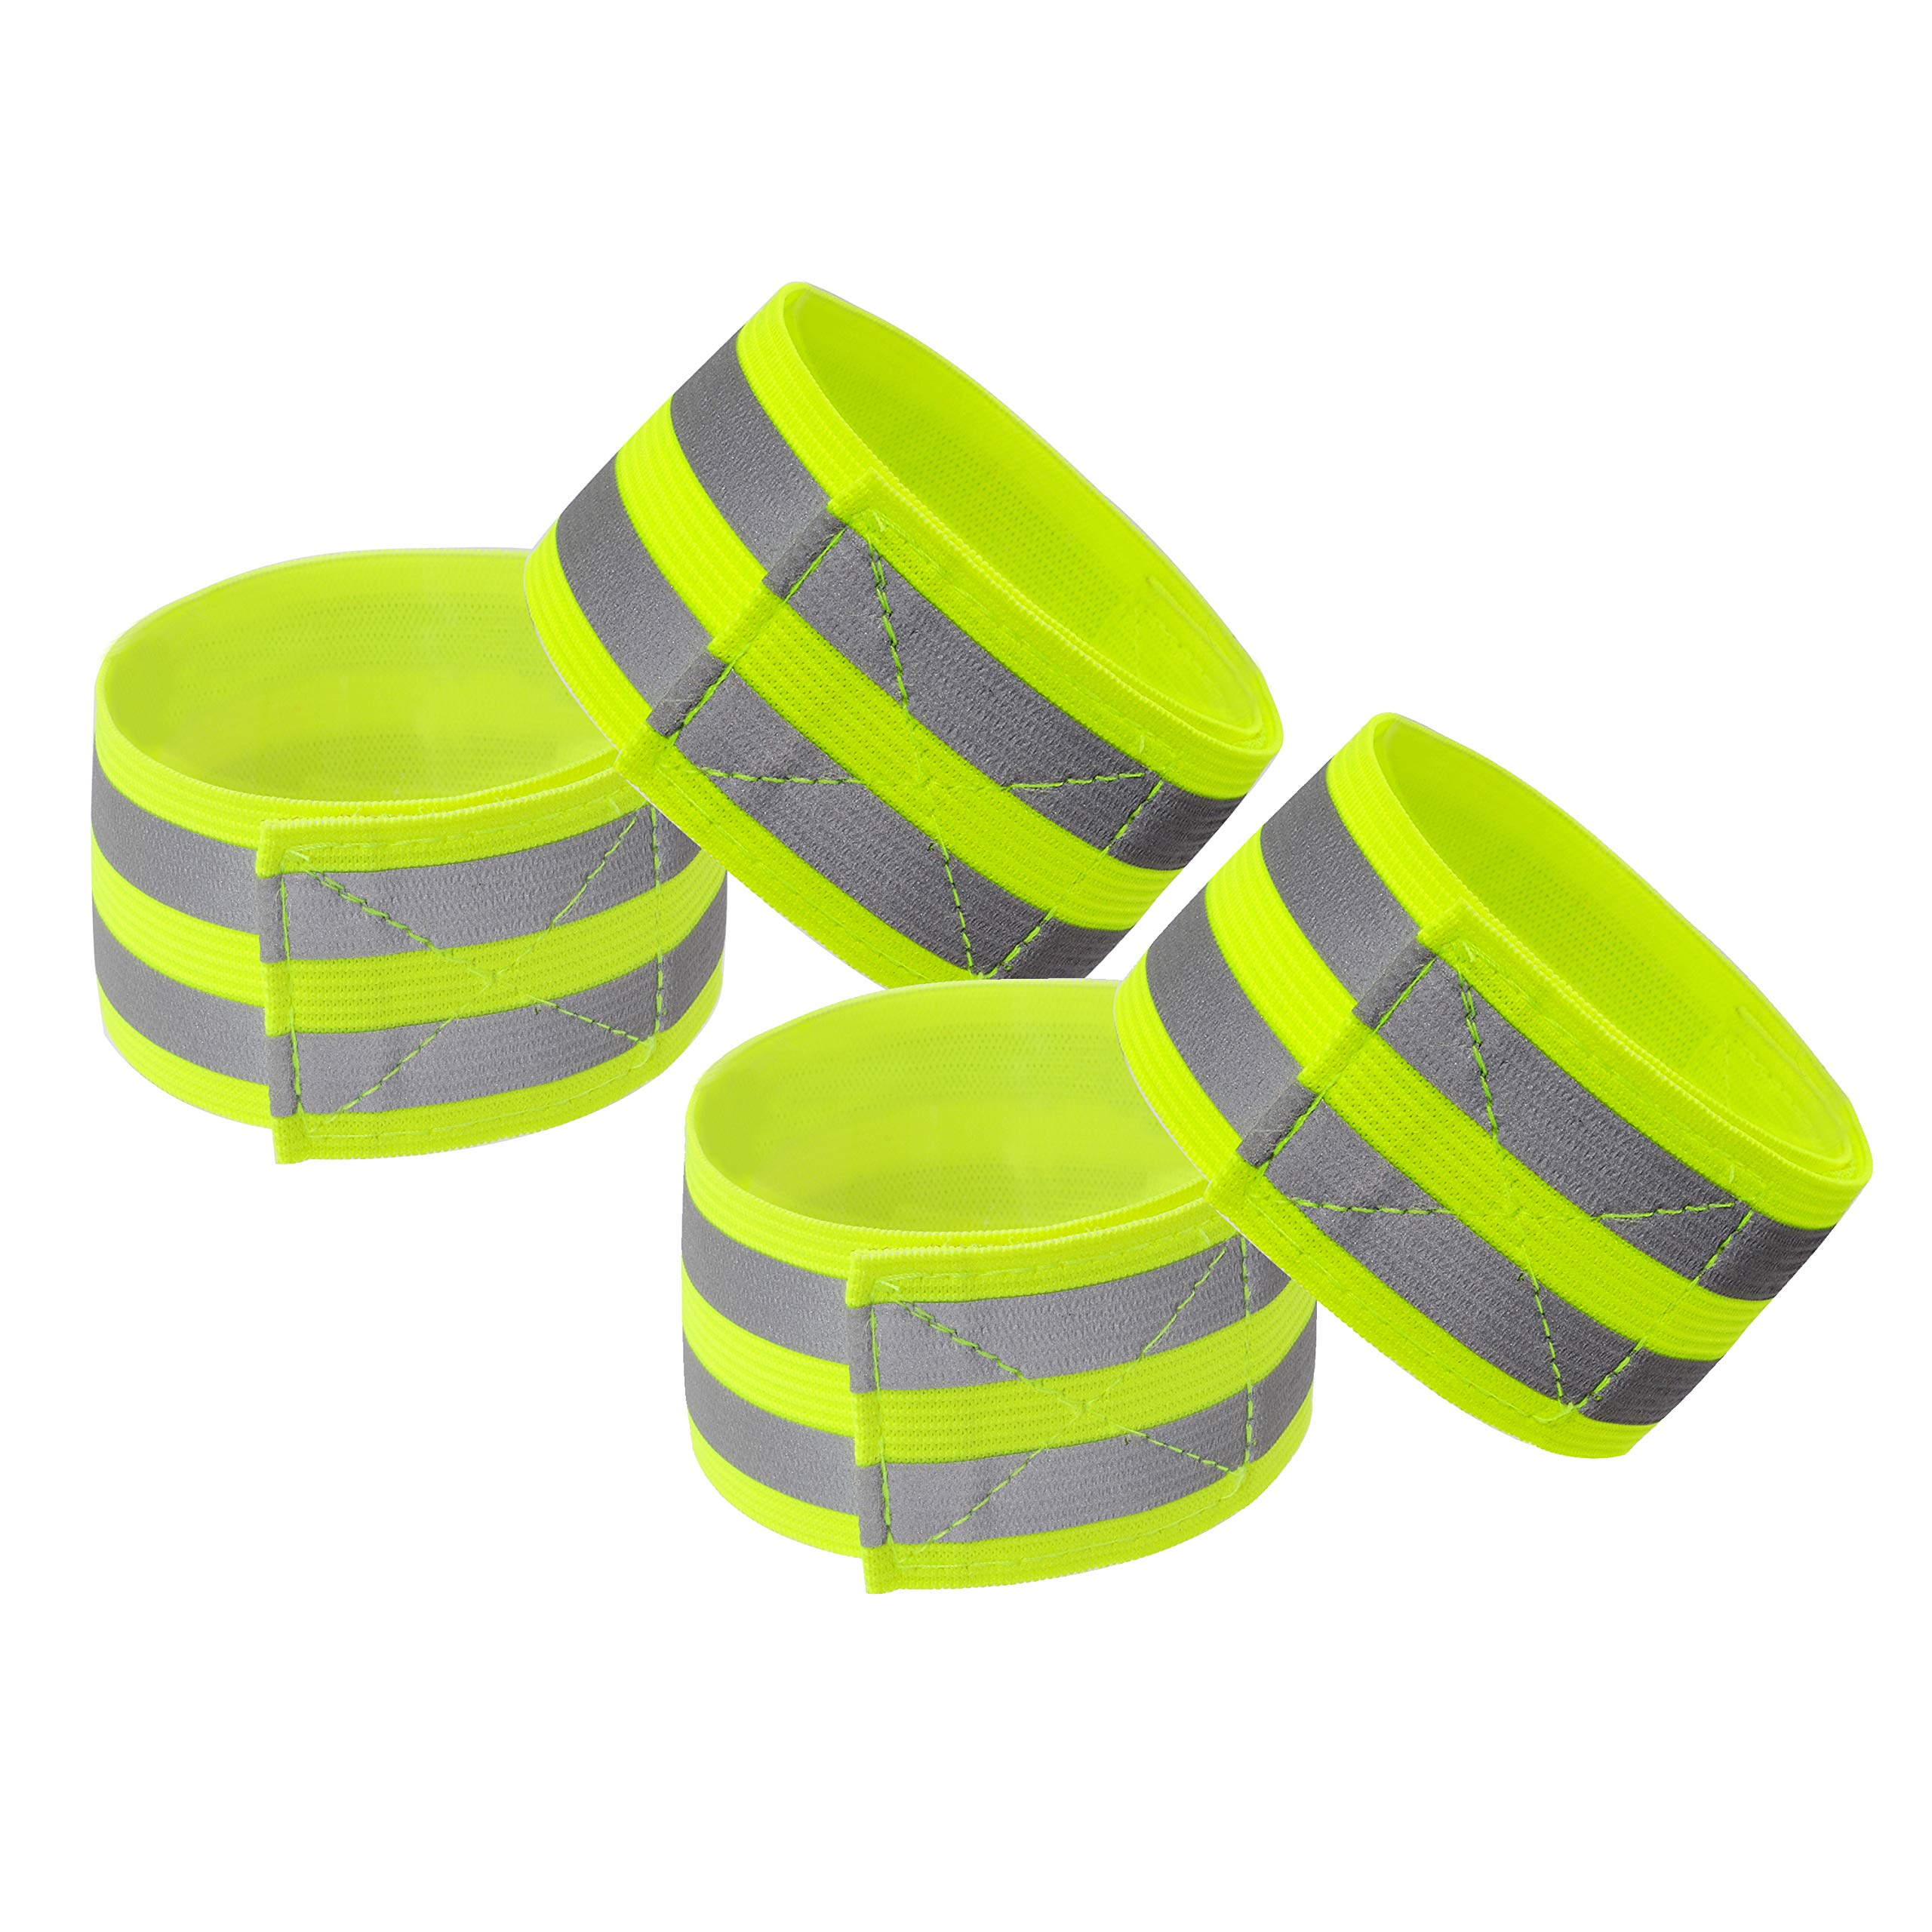 Techion Reflective Fabric Wristband/Armband/Ankle Bands with Two Reflective Strips for Cycling/Biking/Walking/Jogging…